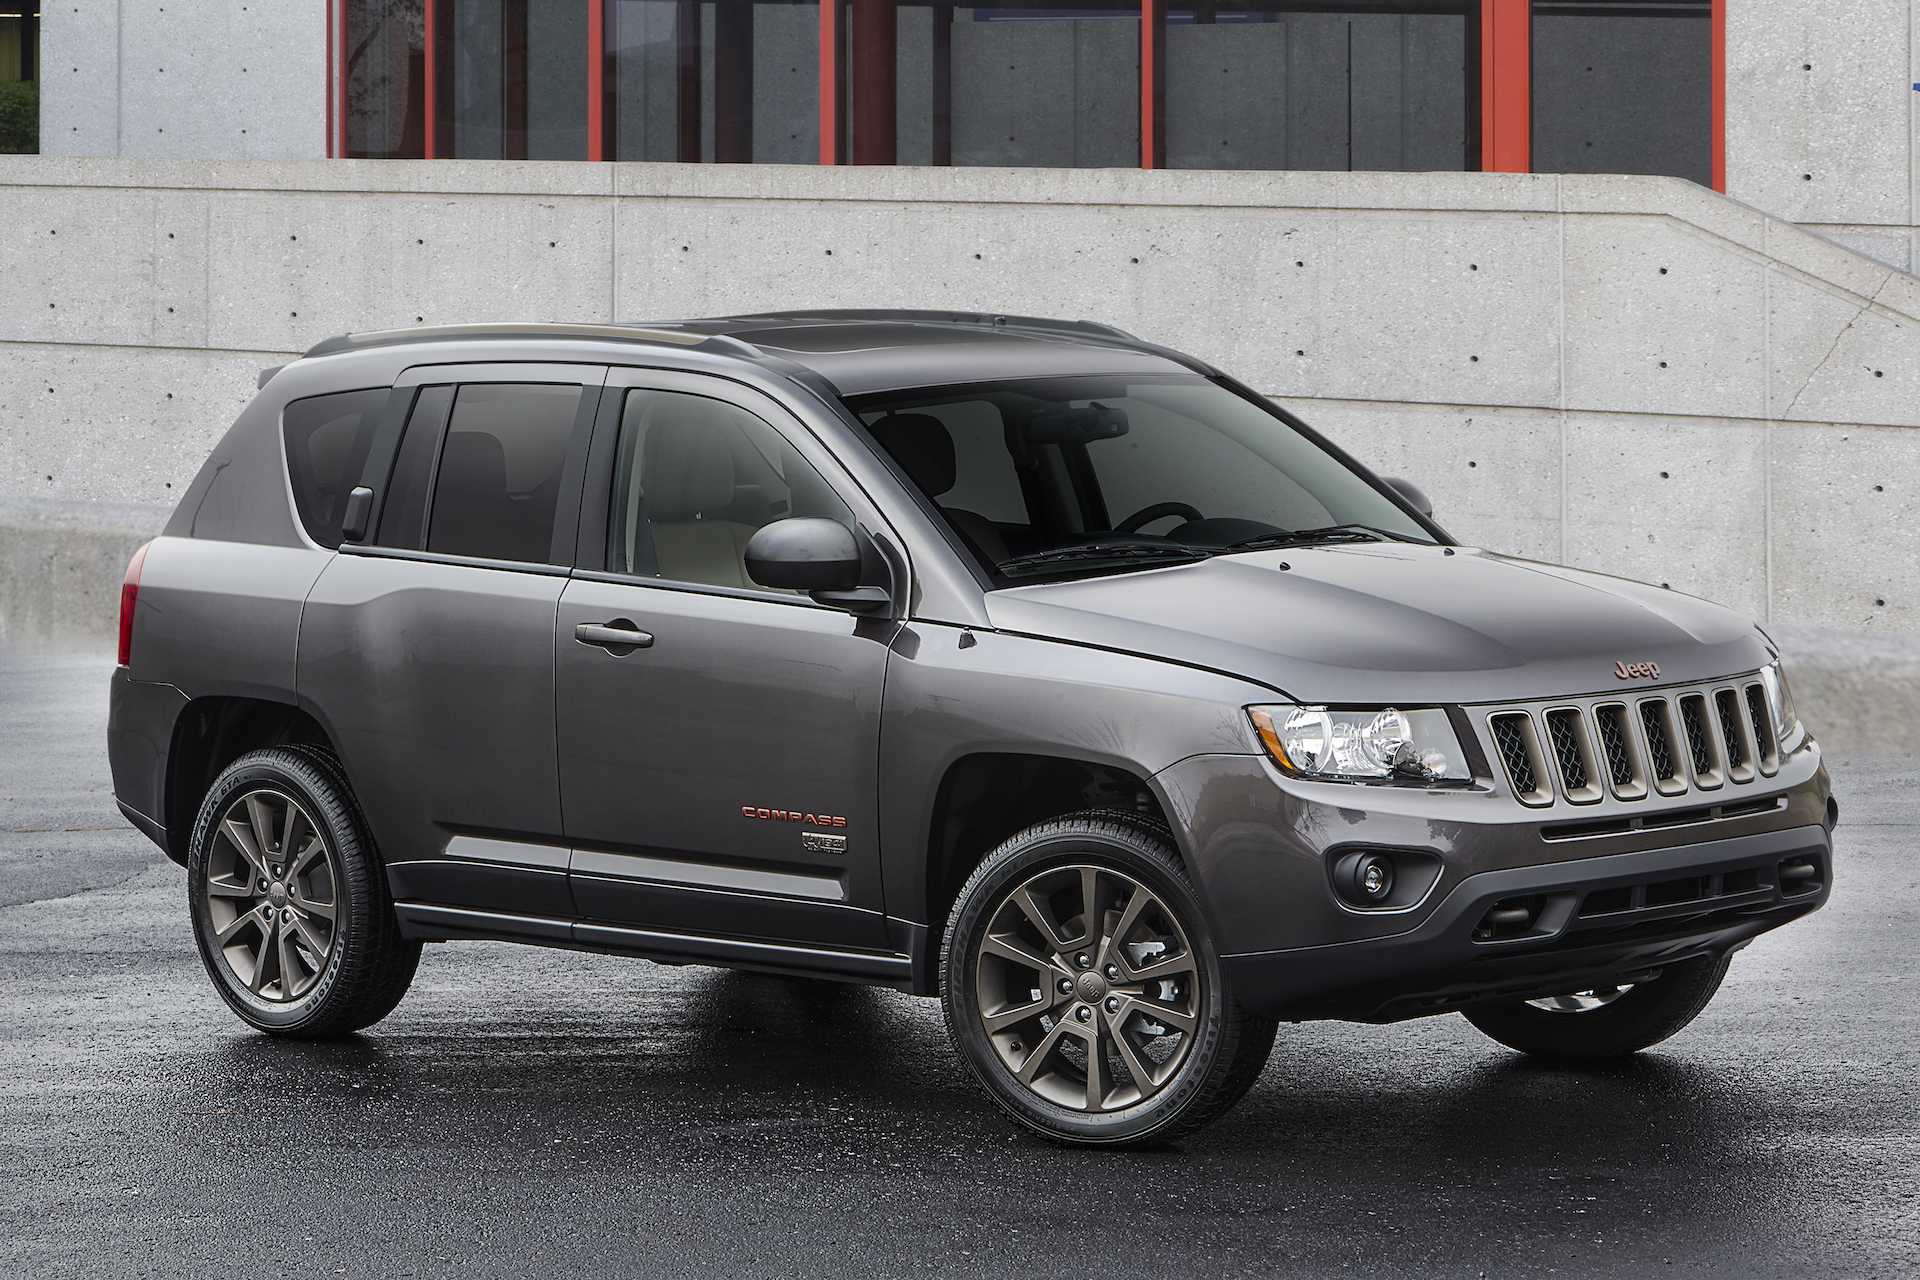 Chevrolet El Paso >> 2017 Jeep Compass Review, Ratings, Specs, Prices, and Photos - The Car Connection